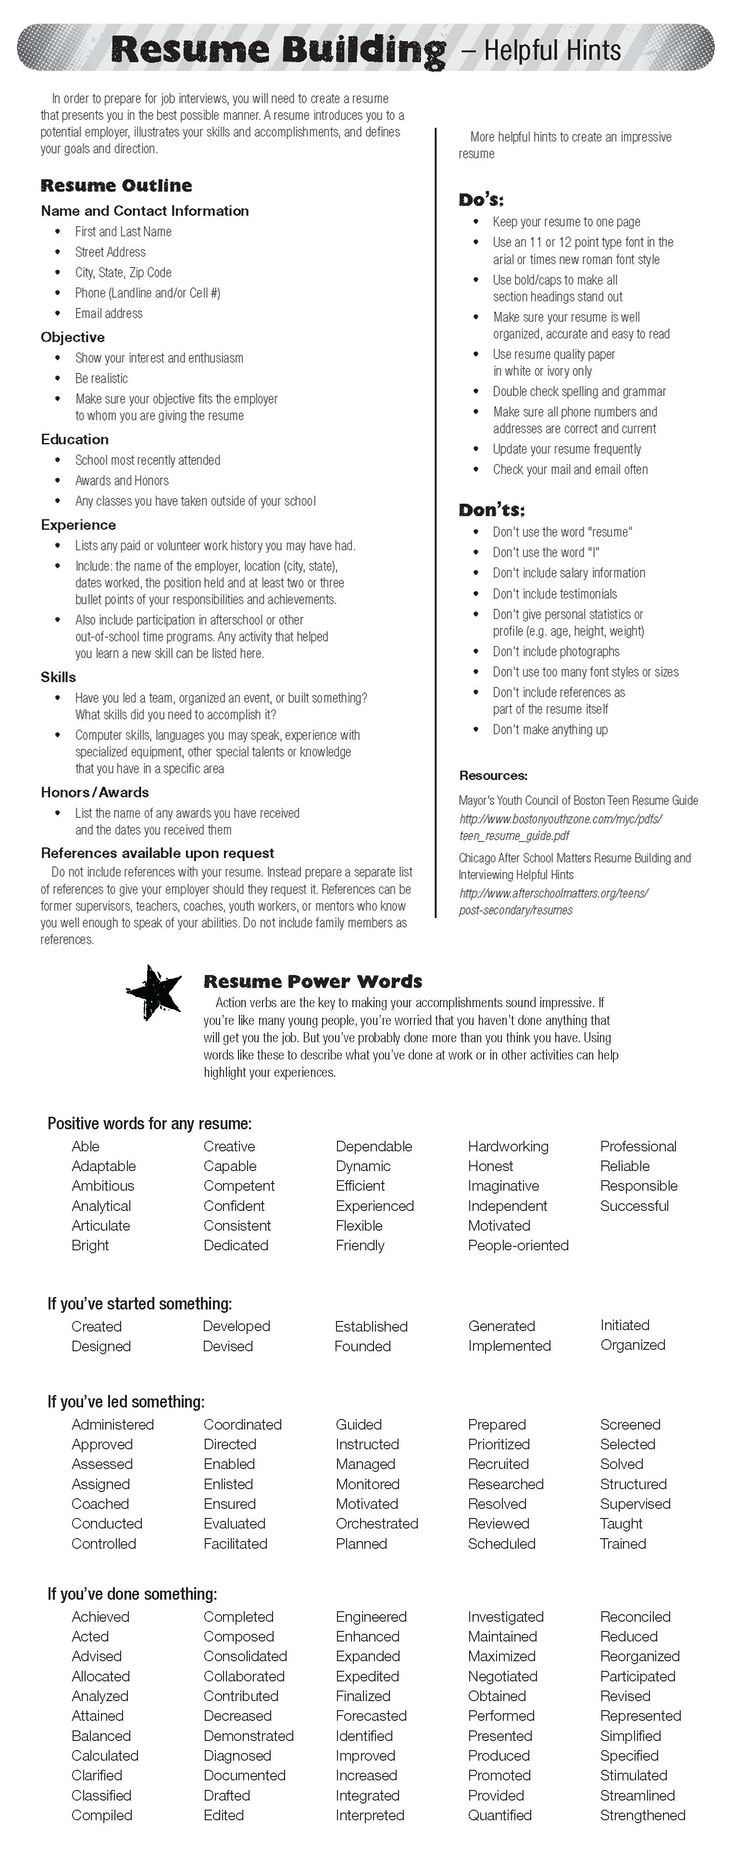 Picnictoimpeachus  Marvelous  Ideas About Resume On Pinterest  Cv Format Resume  With Handsome Check Out Todays Resume Building Tips Resume Resumepowerwords With Cool Independent Consultant Resume Also Resume Bilingual In Addition Cool Resume Templates Free And Fashion Buyer Resume As Well As Grant Writing Resume Additionally Objective For Resume For High School Student From Pinterestcom With Picnictoimpeachus  Handsome  Ideas About Resume On Pinterest  Cv Format Resume  With Cool Check Out Todays Resume Building Tips Resume Resumepowerwords And Marvelous Independent Consultant Resume Also Resume Bilingual In Addition Cool Resume Templates Free From Pinterestcom